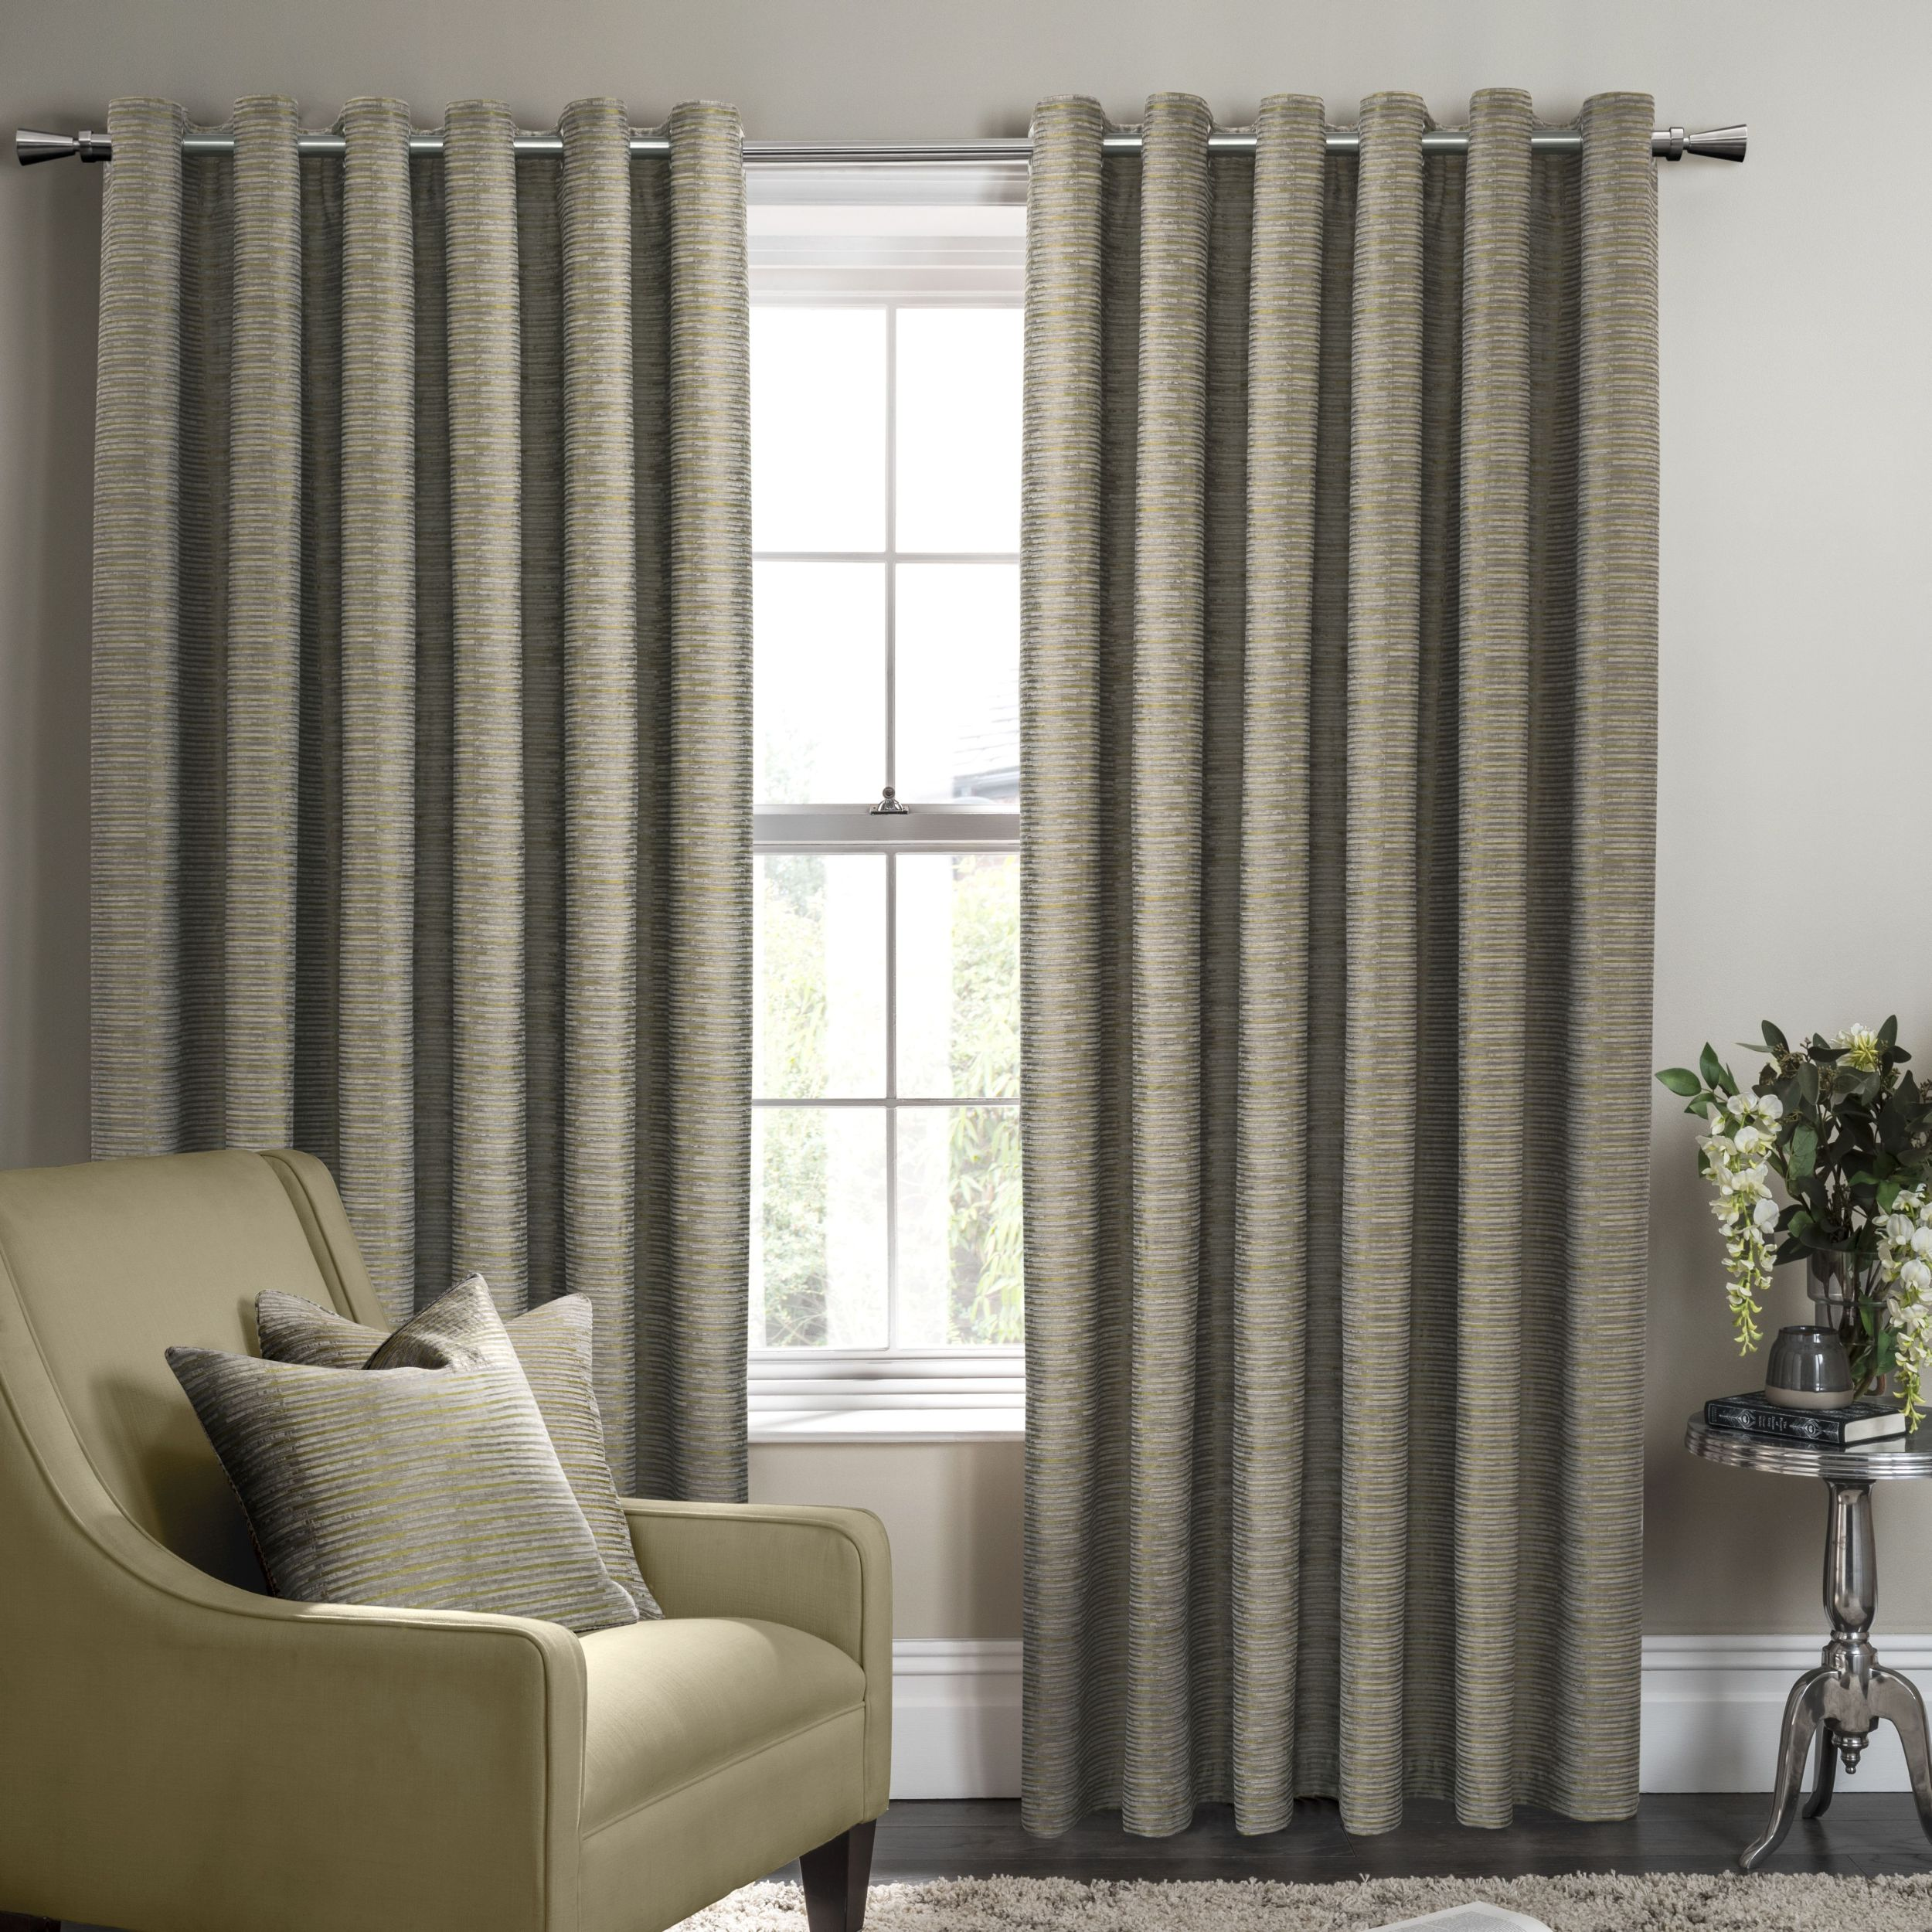 light thermal top ready grey made unlined reducing curtains lunar curtain group coated tape pencil products dark pleat readymade